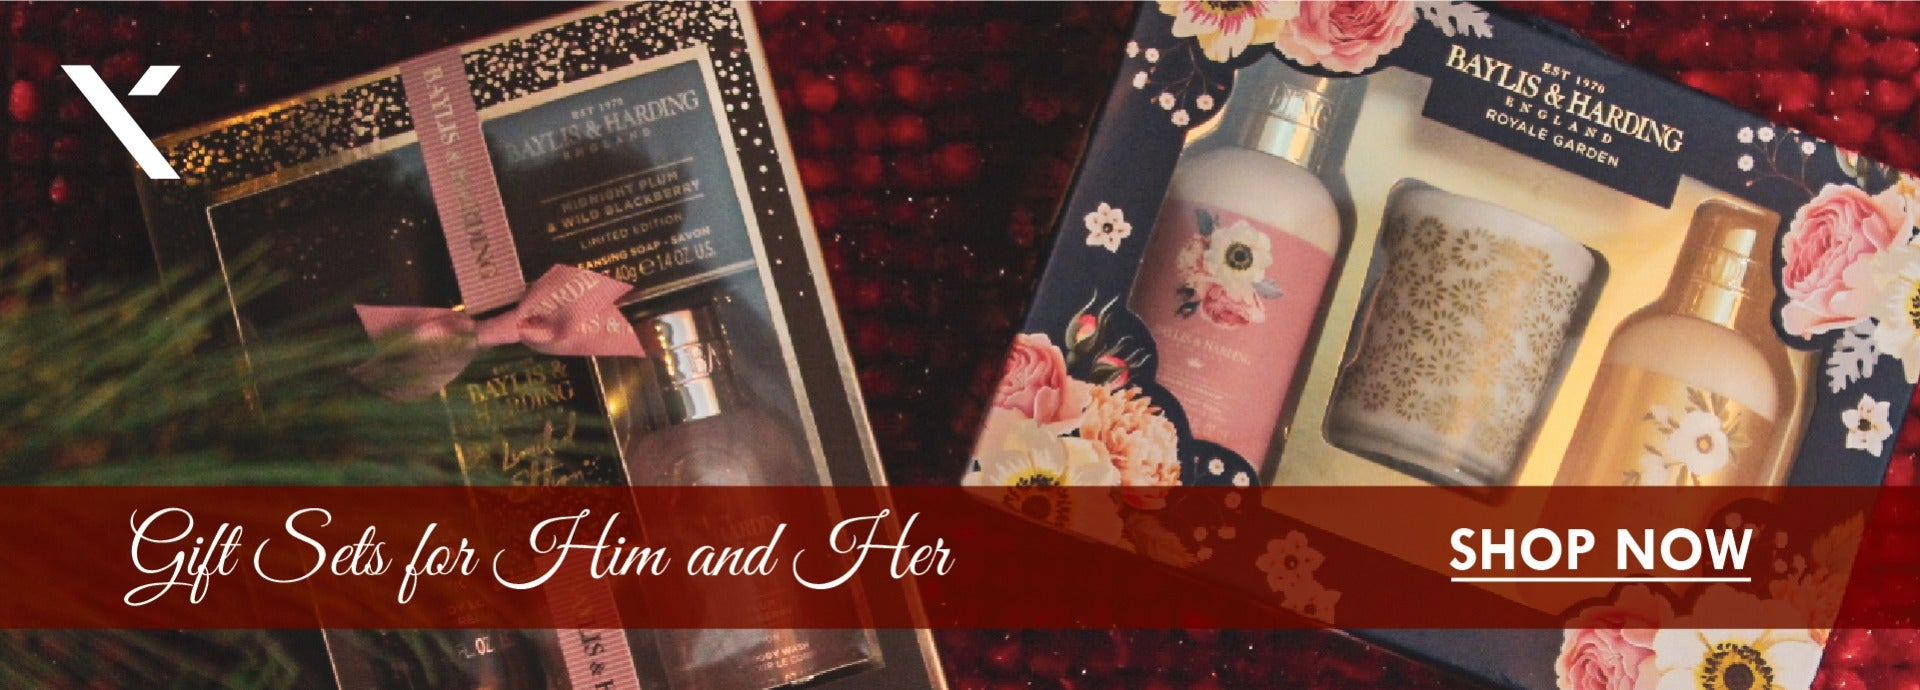 Gift Sets for Him and Her